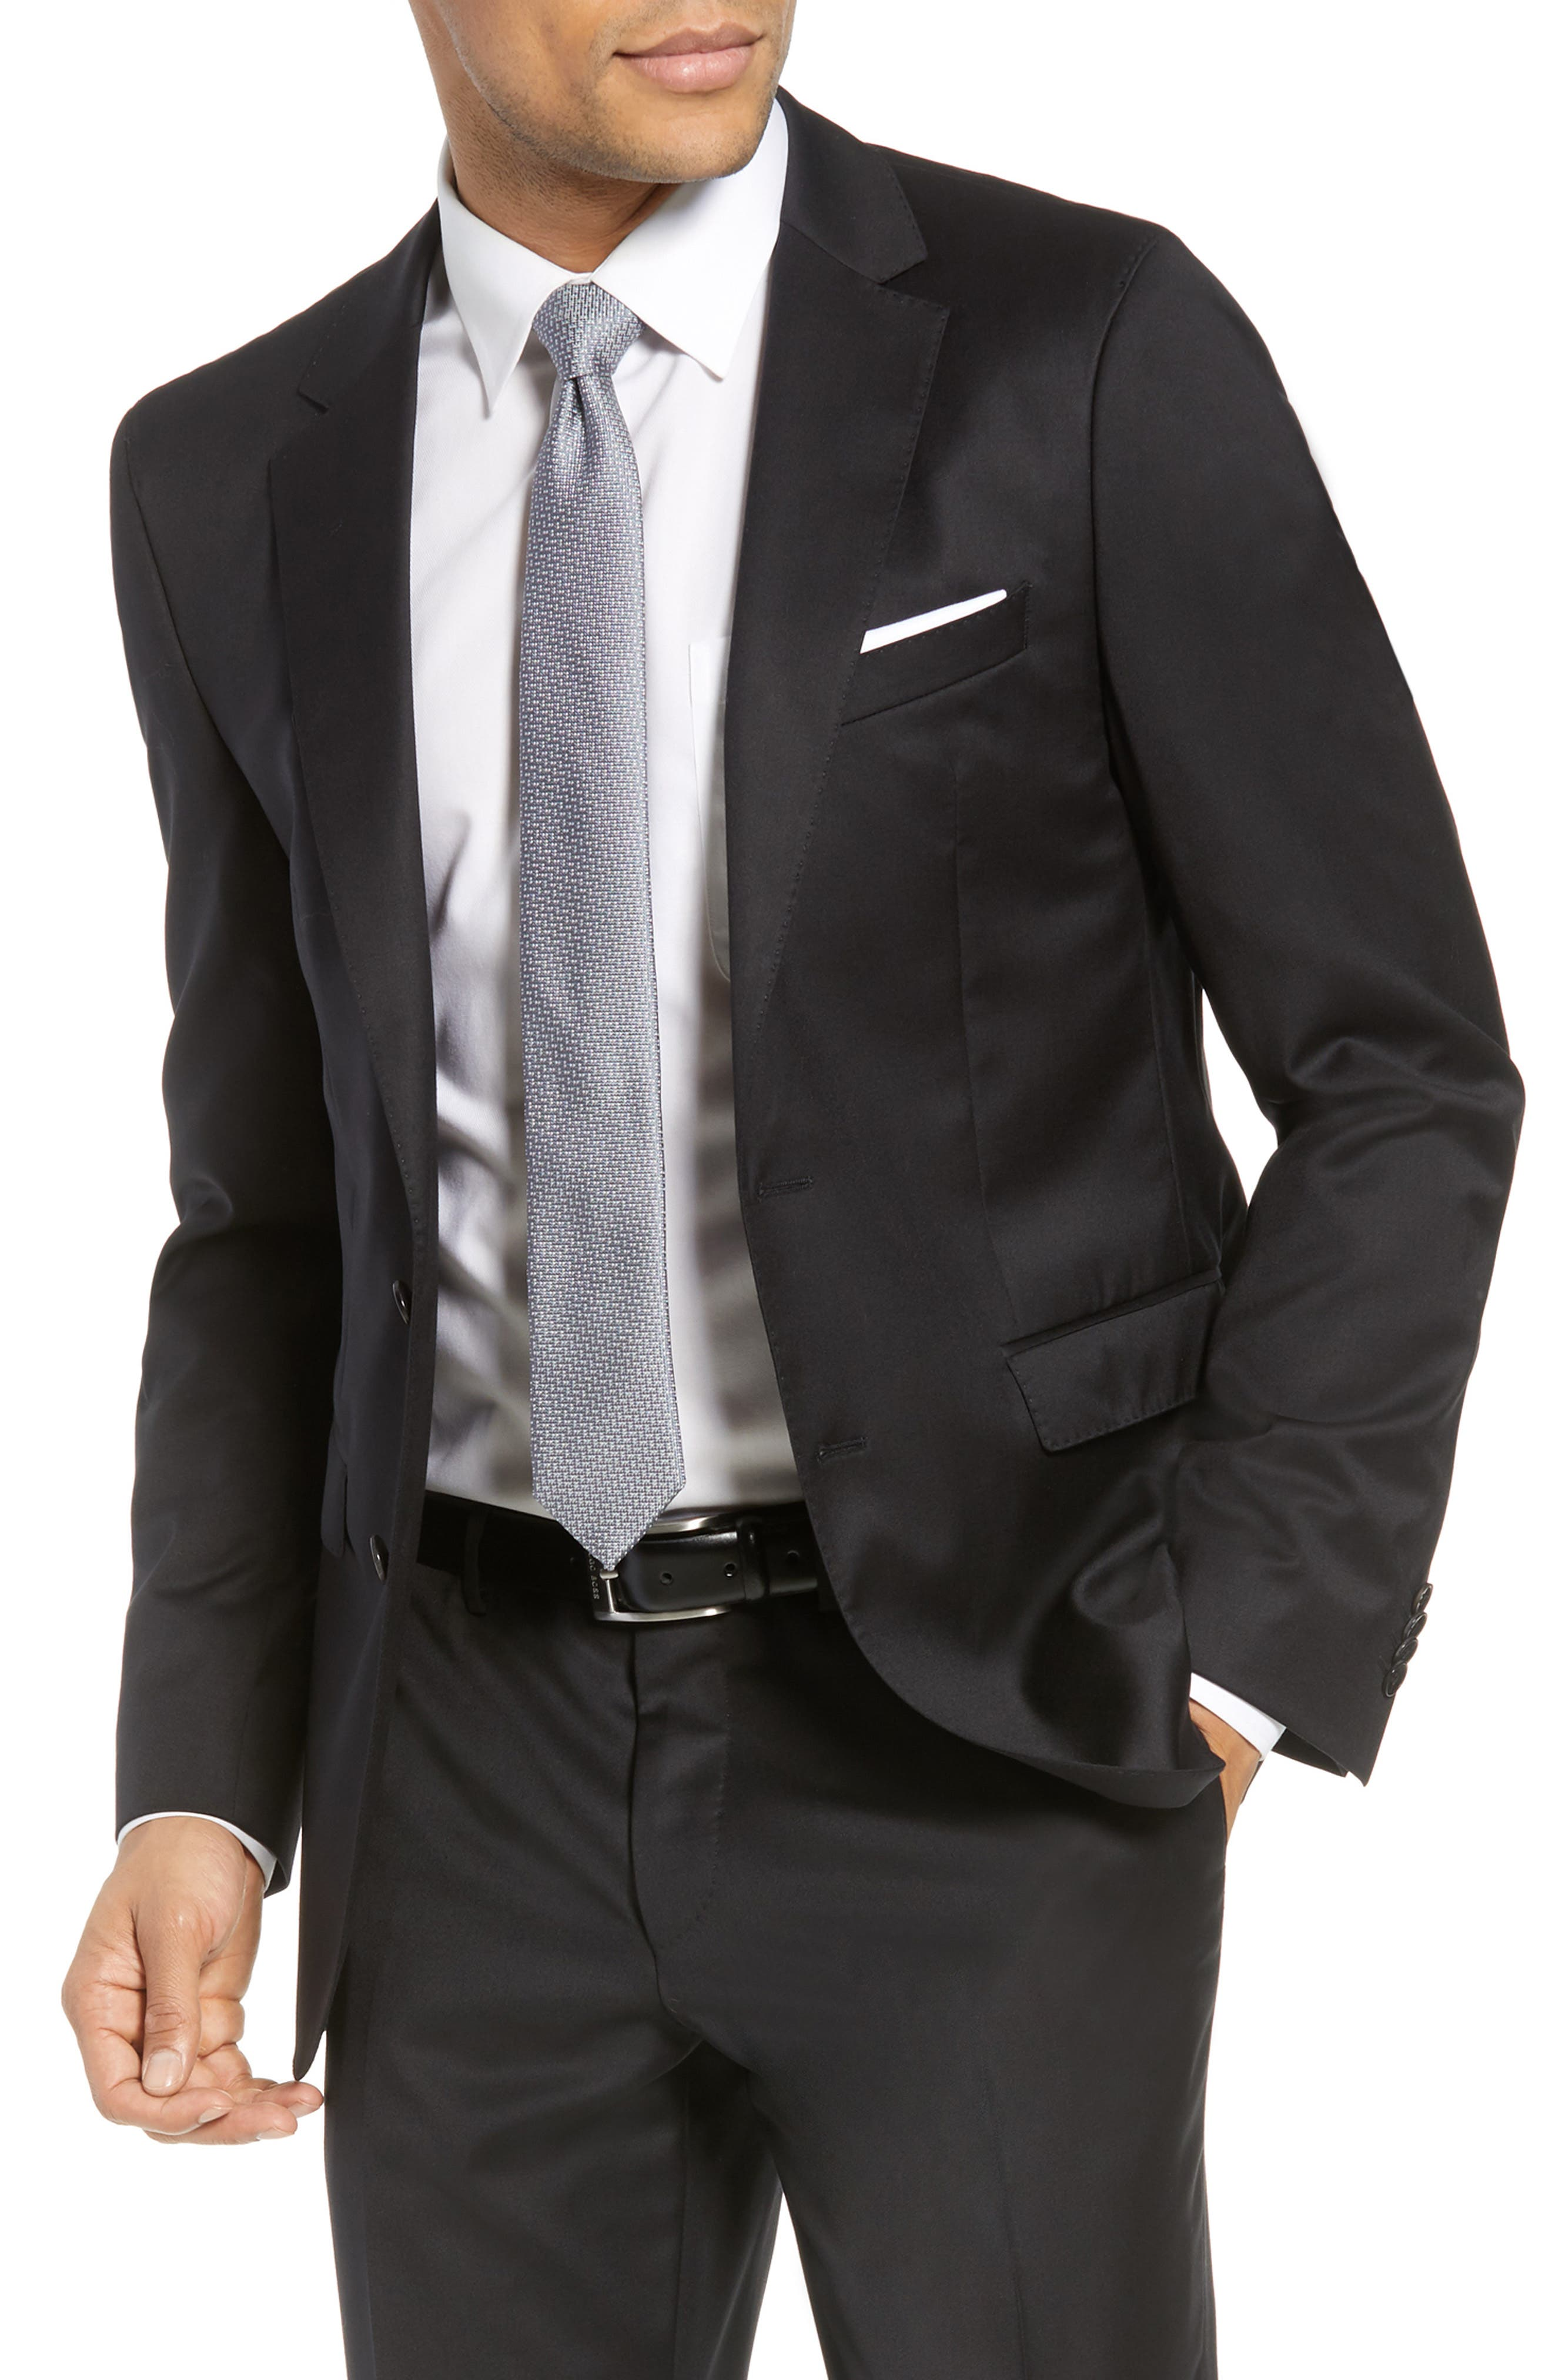 Ryan/Win Extra Trim Fit Solid Wool Suit,                             Alternate thumbnail 7, color,                             BLACK